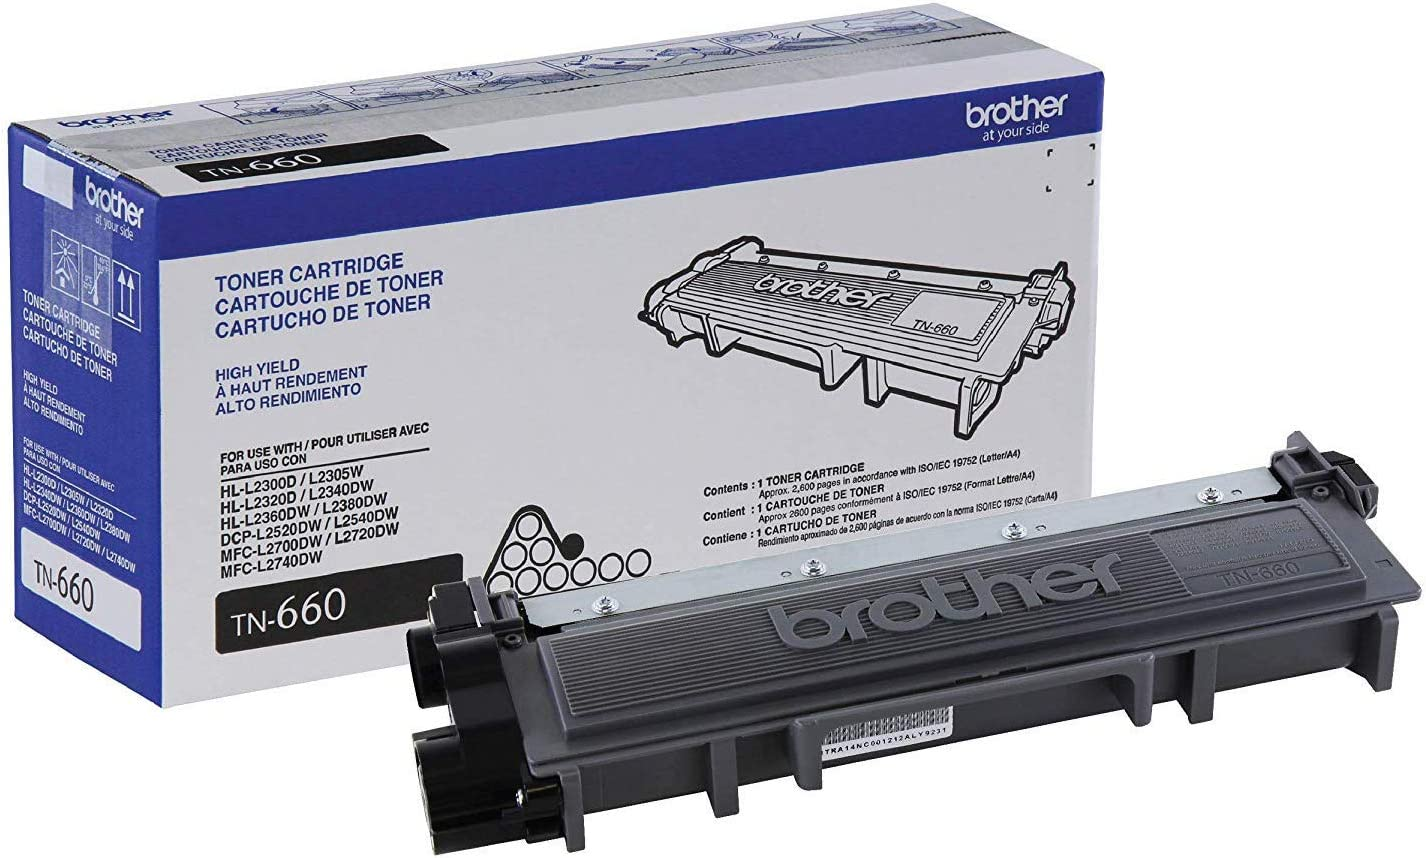 Brother Genuine High Yield Toner Cartridge, TN660, Replacement Black Toner, Page Yield Up To 2,600 Pages,  Dash Replenishment Cartridge: Office Products